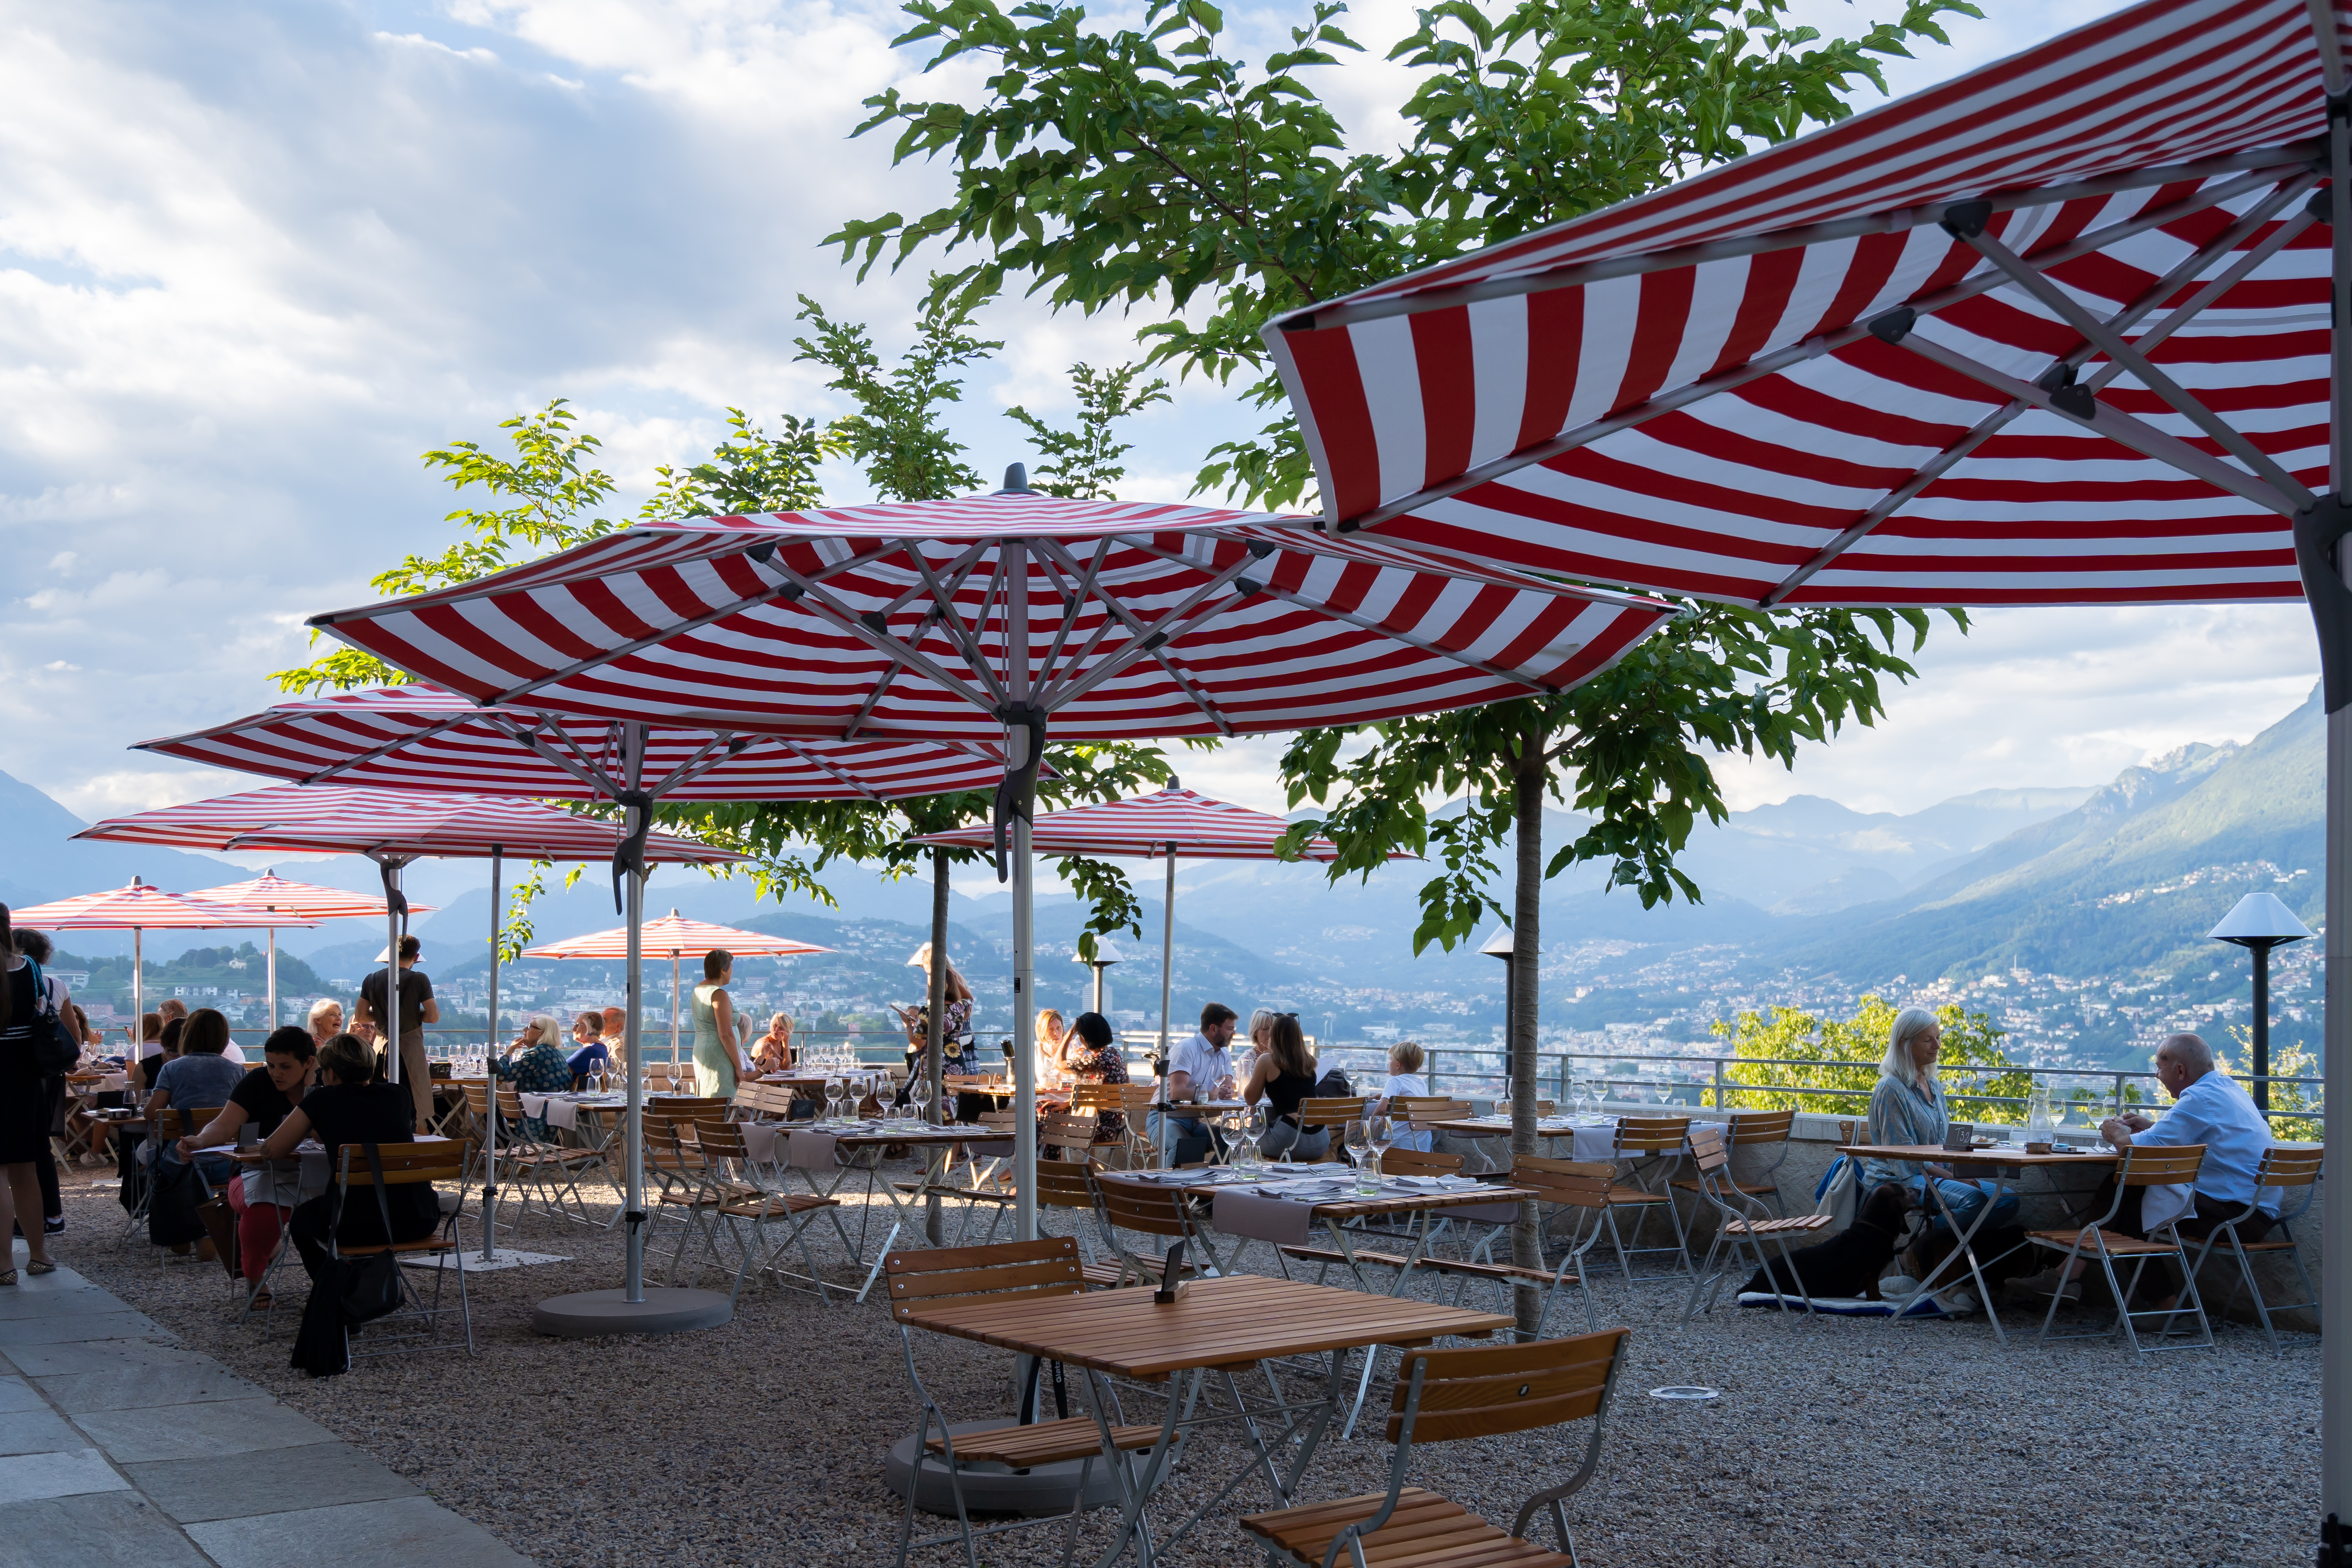 Homepage_Bigatt_Hotel_and_Restaurant_Lugano_22.jpg